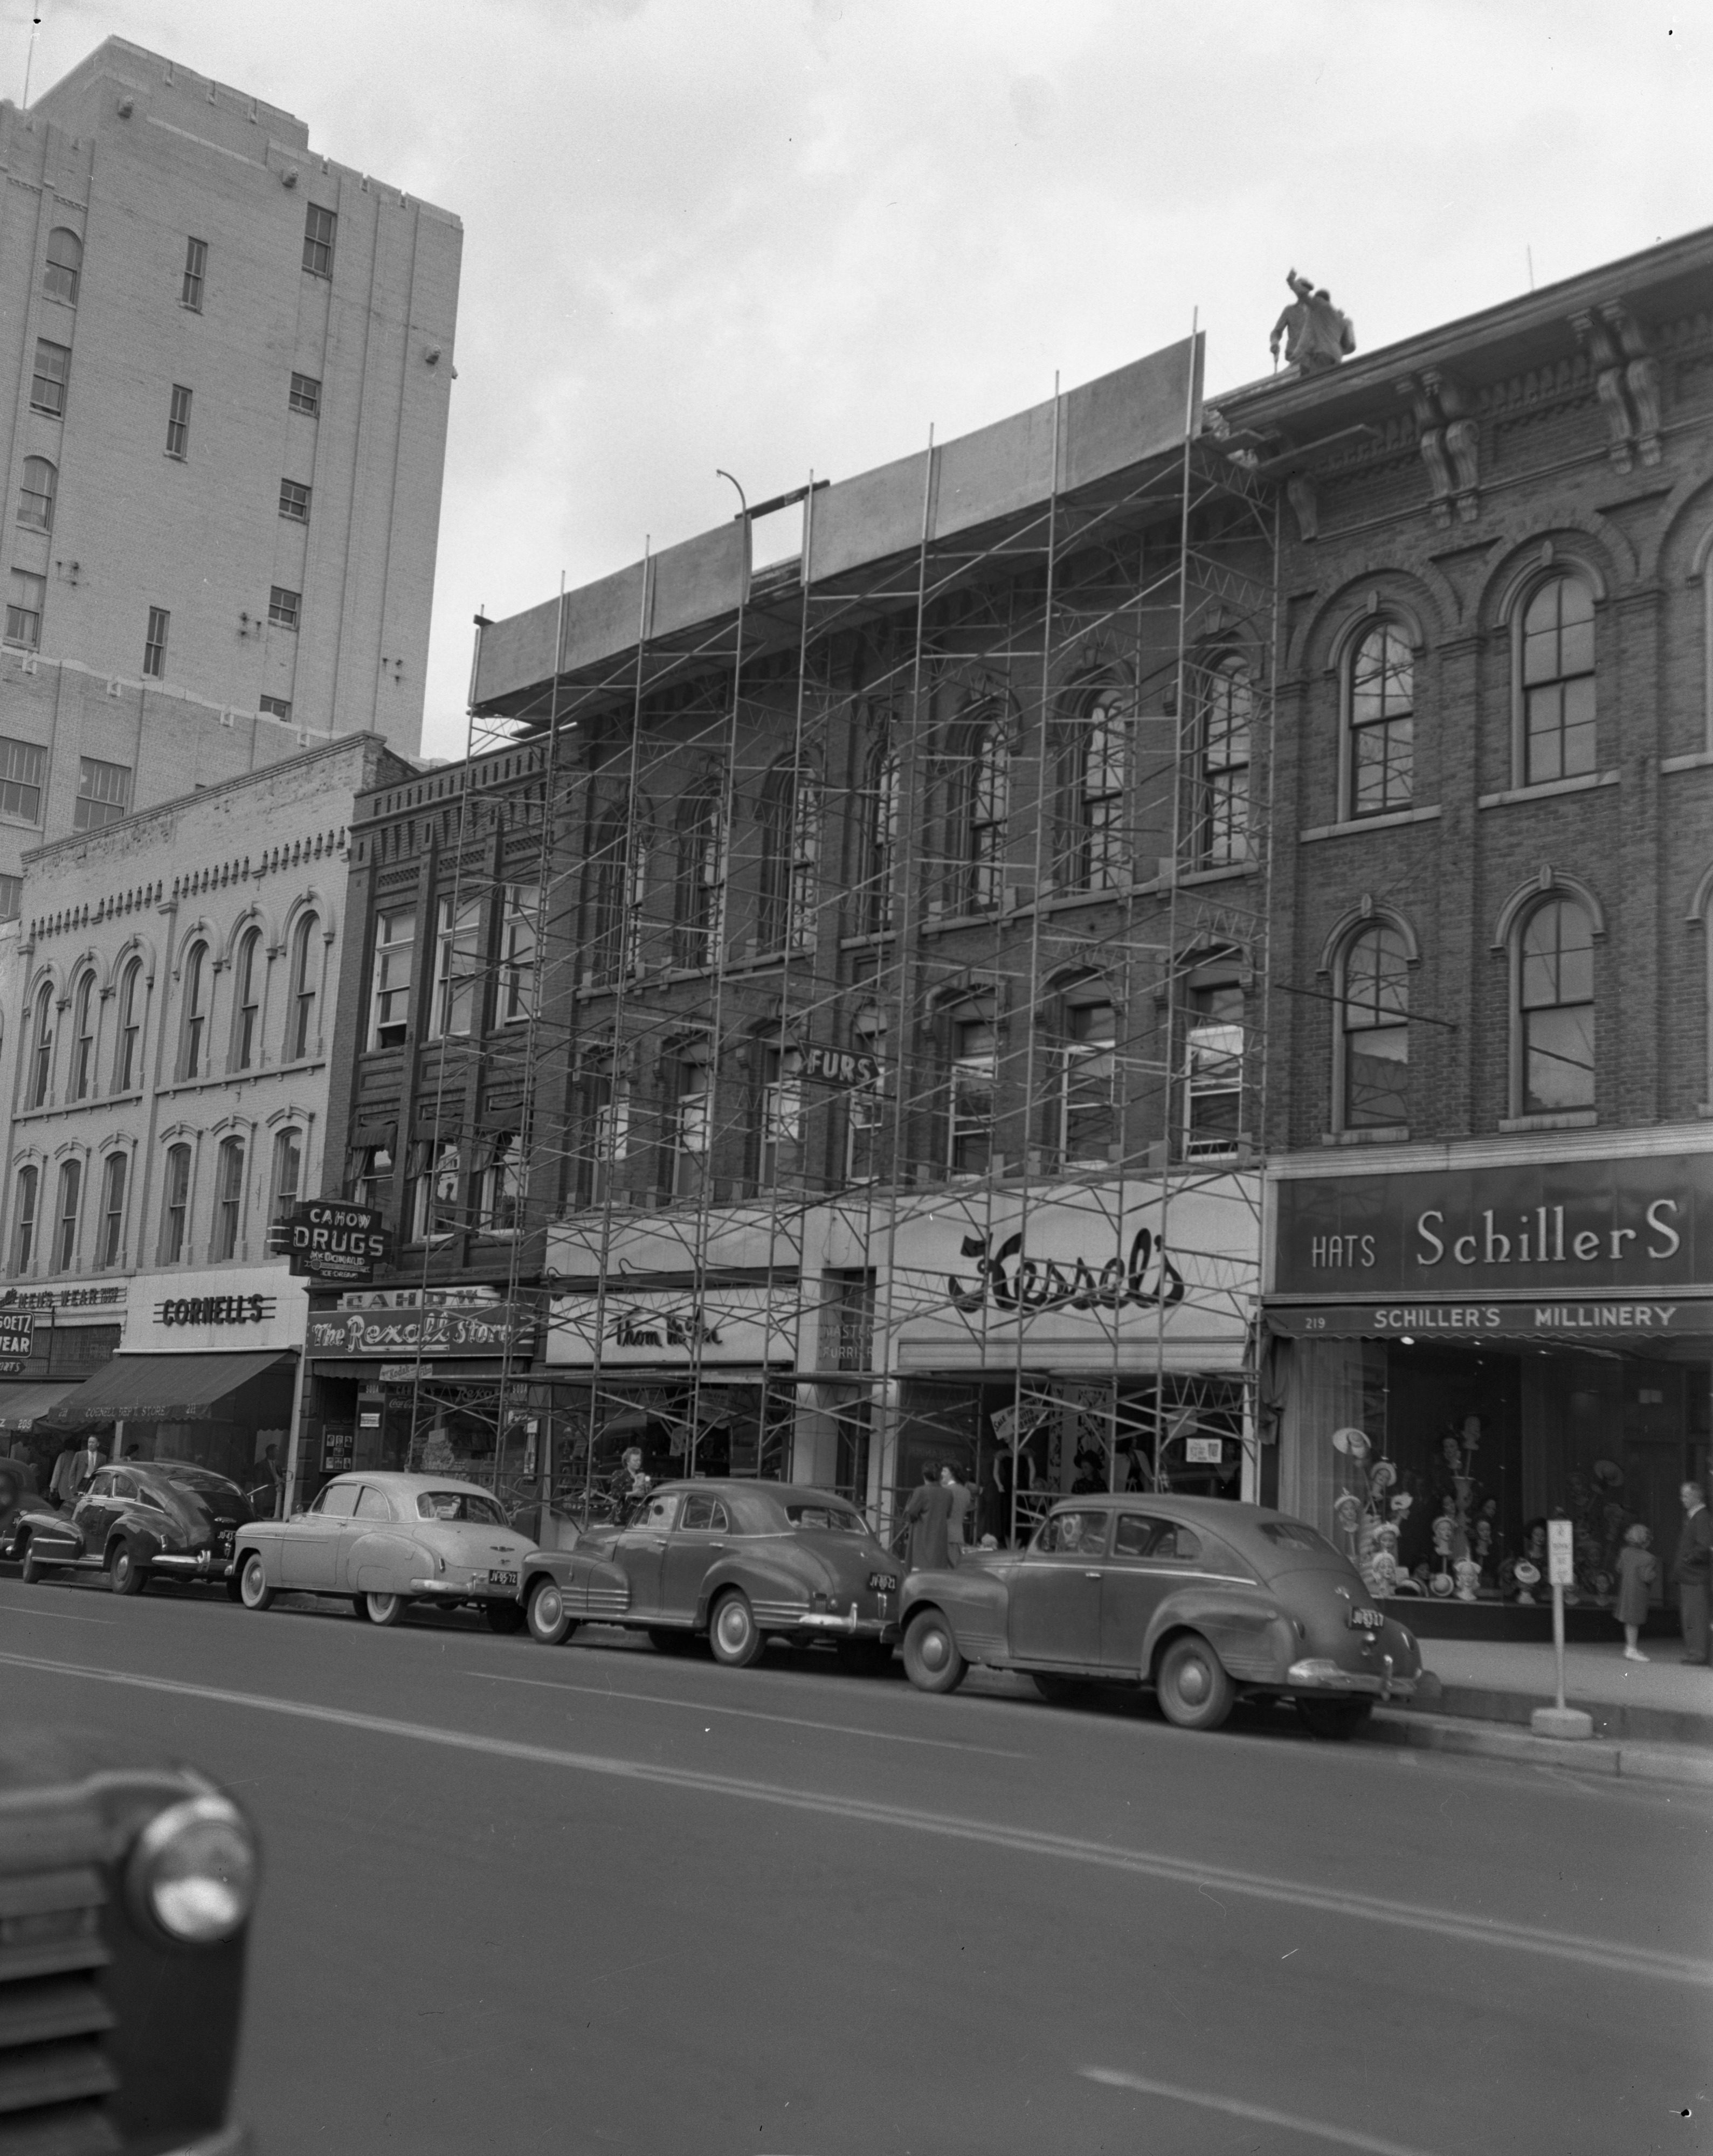 Kessel's Store Front Gets Remodeled, May 1949 image